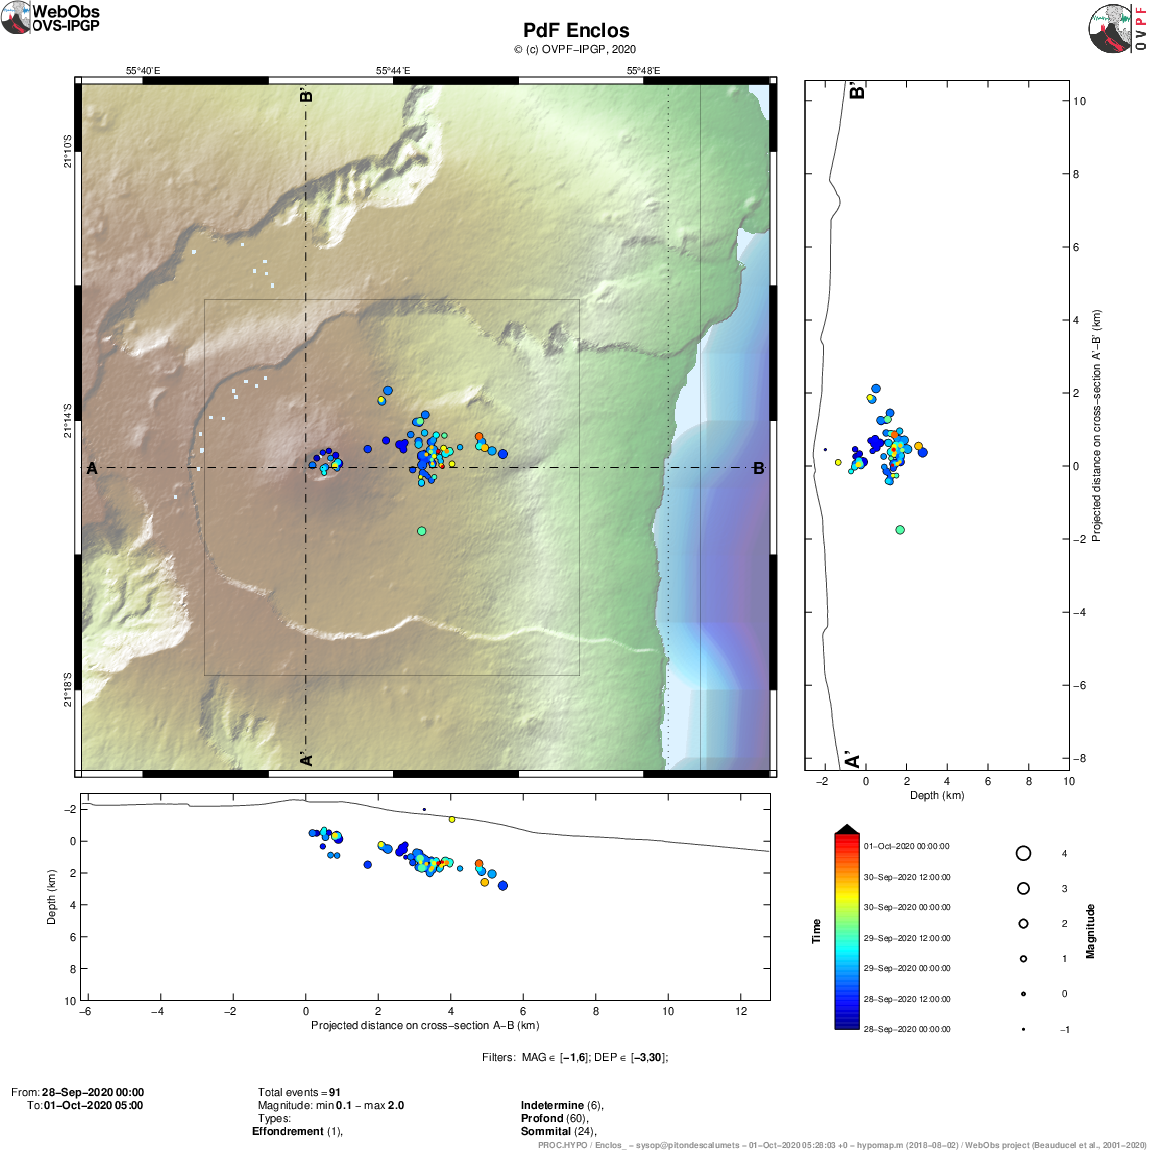 Piton de La Fournaise - Location map (epicenters) and north-south and east-west sections (showing the location in depth, hypocenters) of the earthquakes recorded and located by the OVPF-IPGP between 28/09/2020 and 01 / 10/2020 (9h00) under the Piton de la Fournaise massif. Only localizable earthquakes have been shown on the map (© OVPF-IPGP).